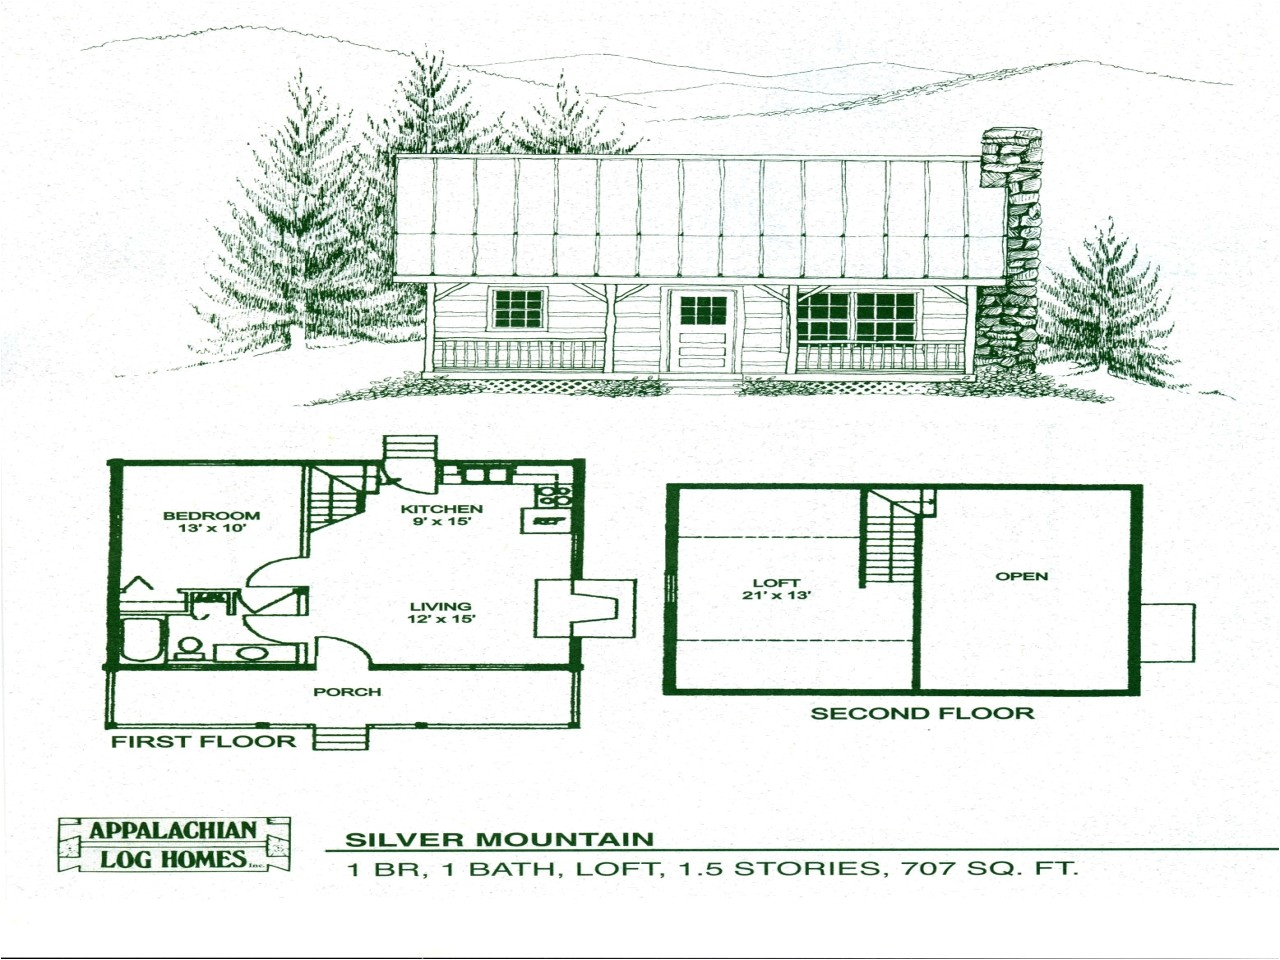 90ec40ba6a755169 small cabin floor plans with loft 16x20 cabin floor plans